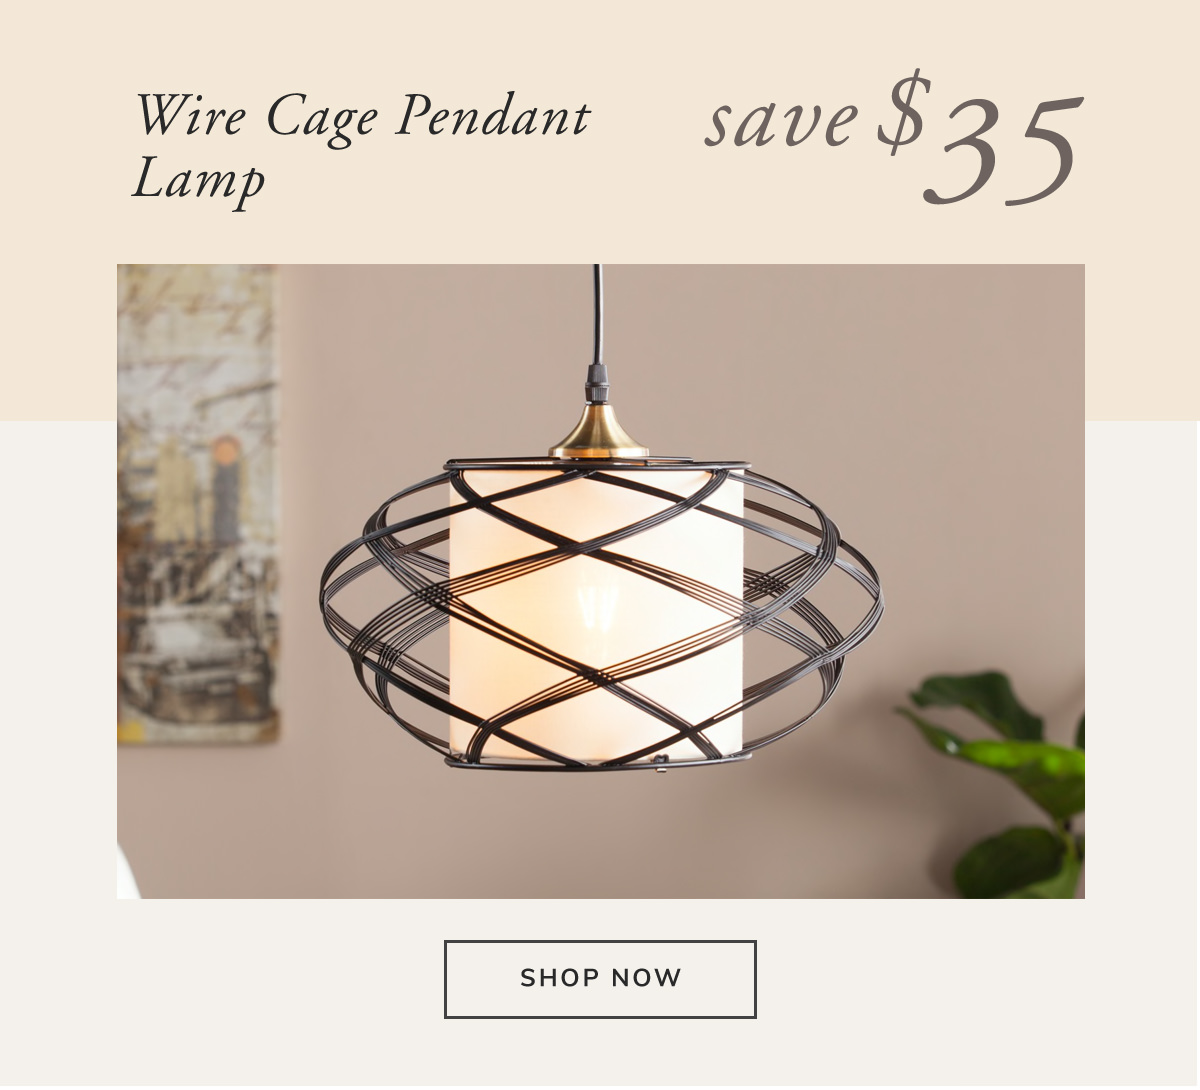 Wire Cage Pendant Lamp. Save $35 | SHOP NOW